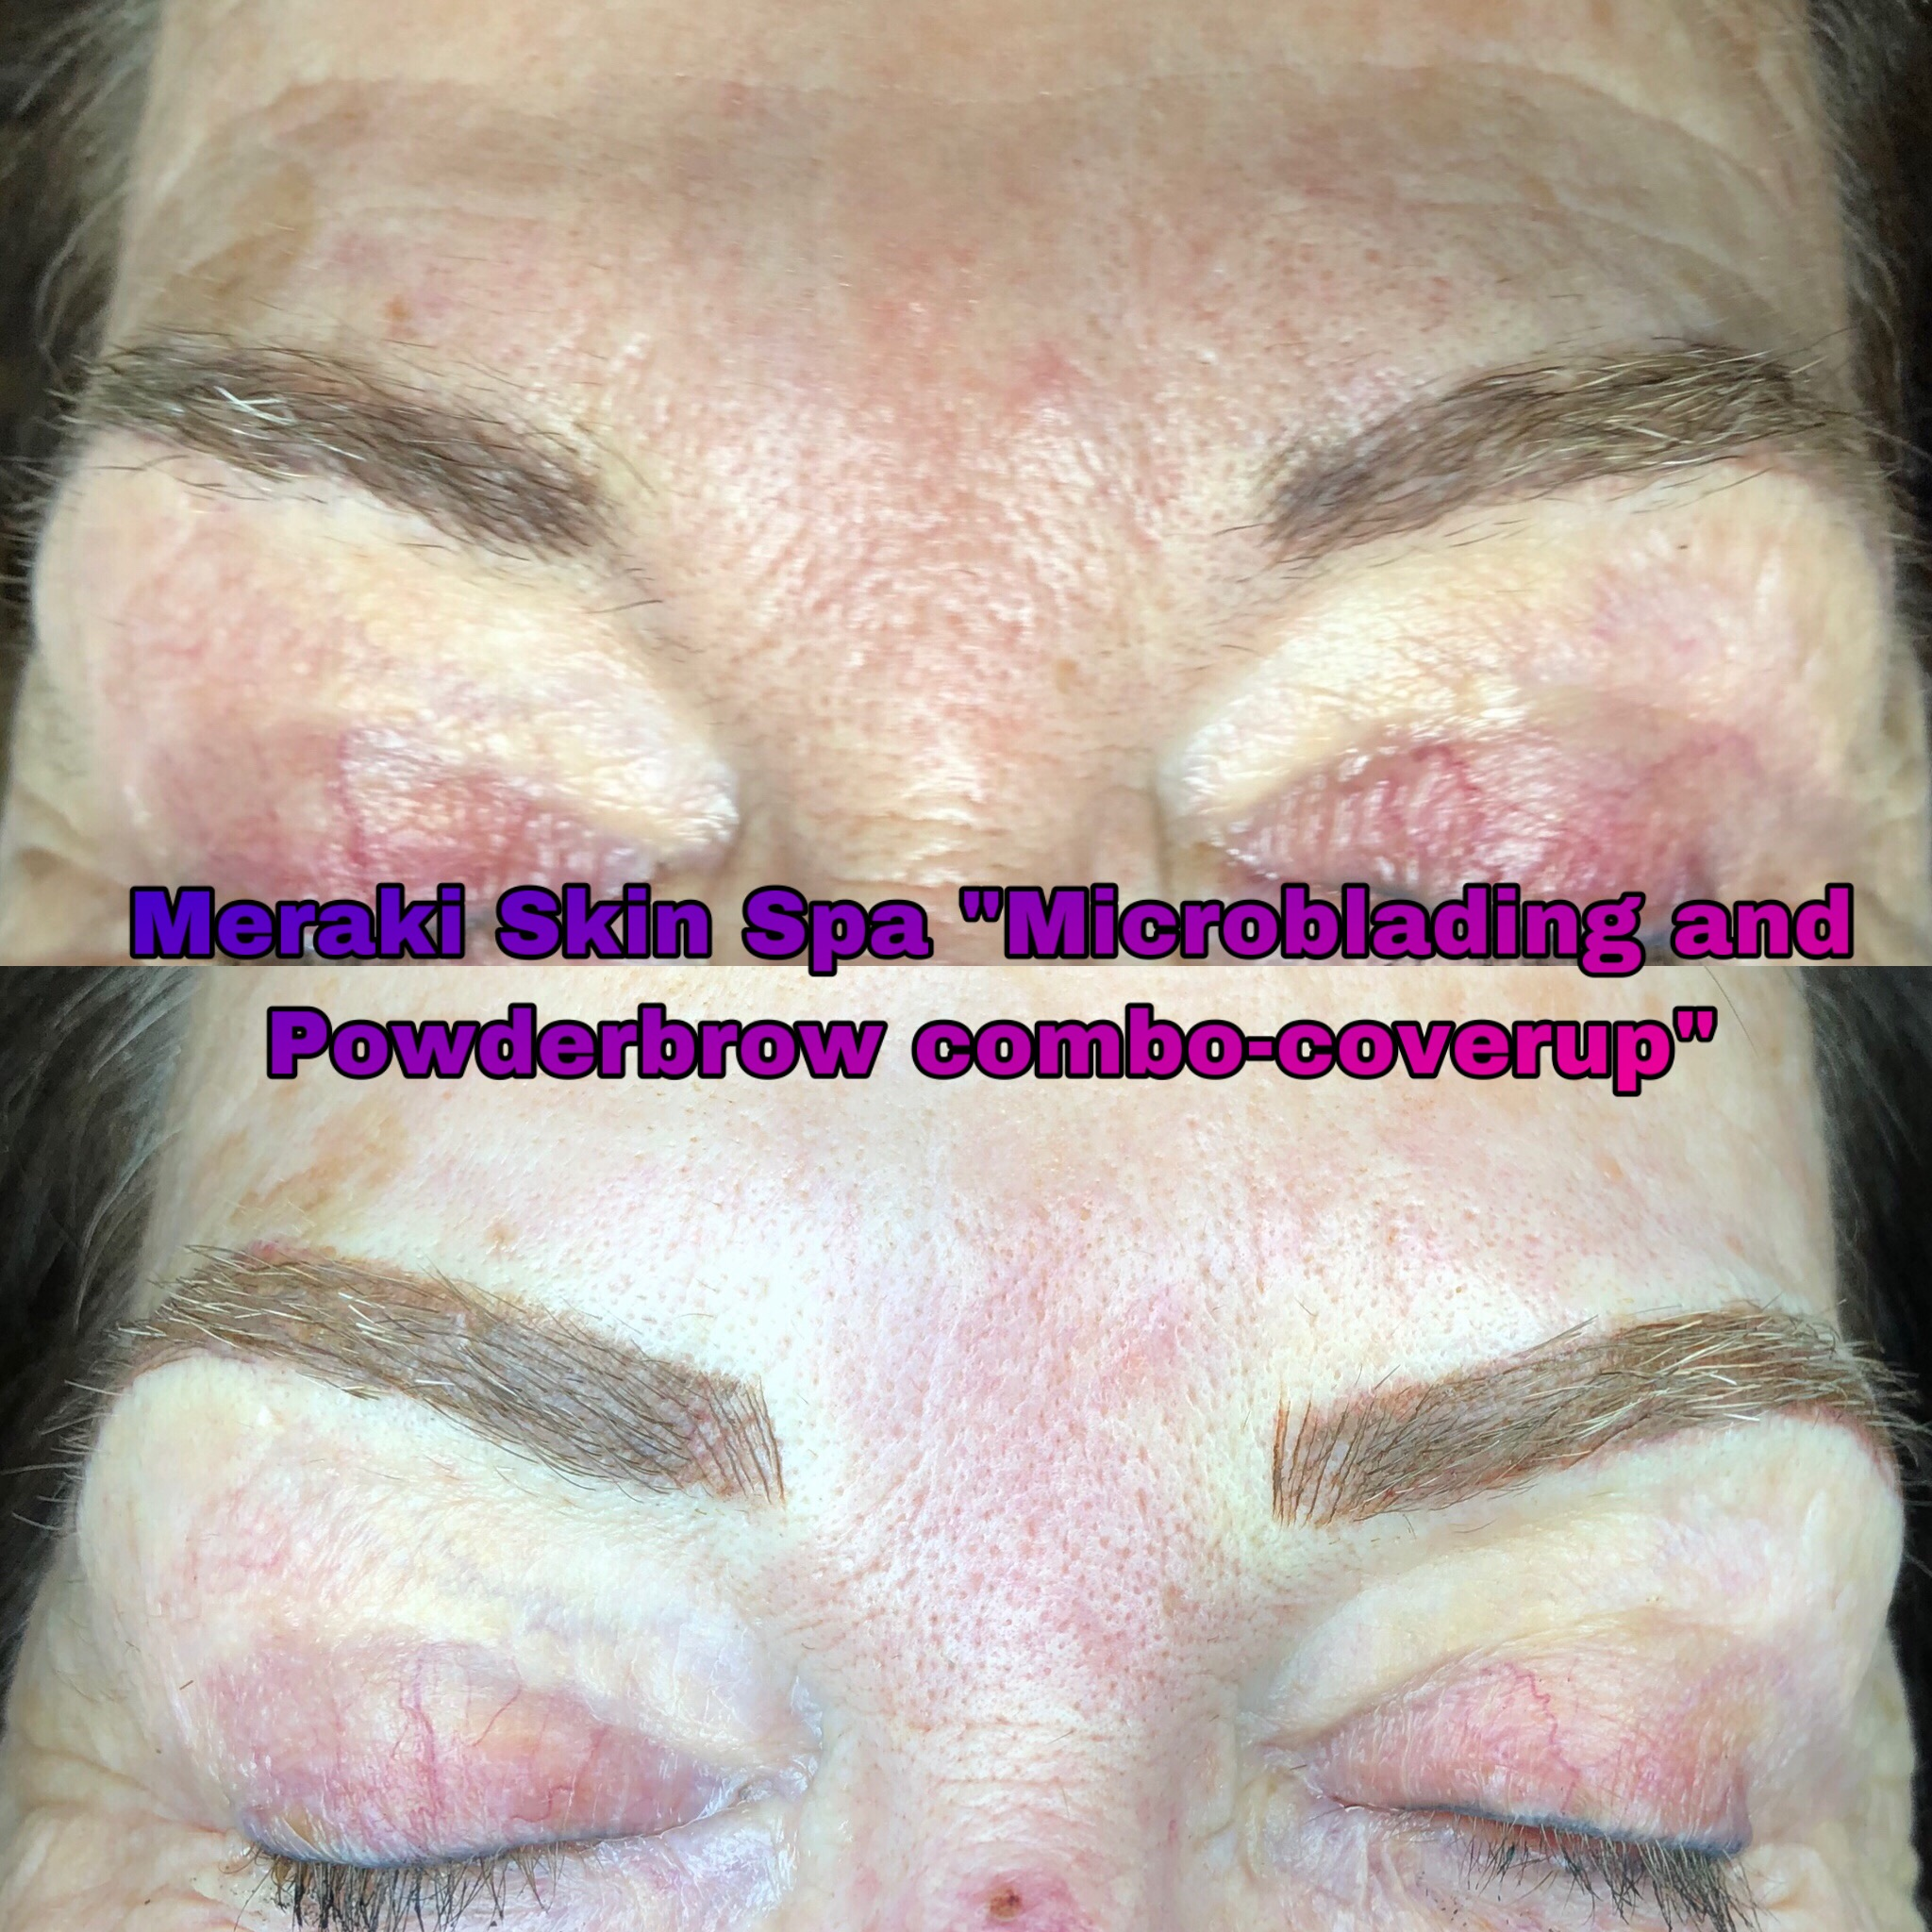 alt text 3 year coverup, microblading-powderbrow combo-permanent tattooed eyebrows meridian idaho